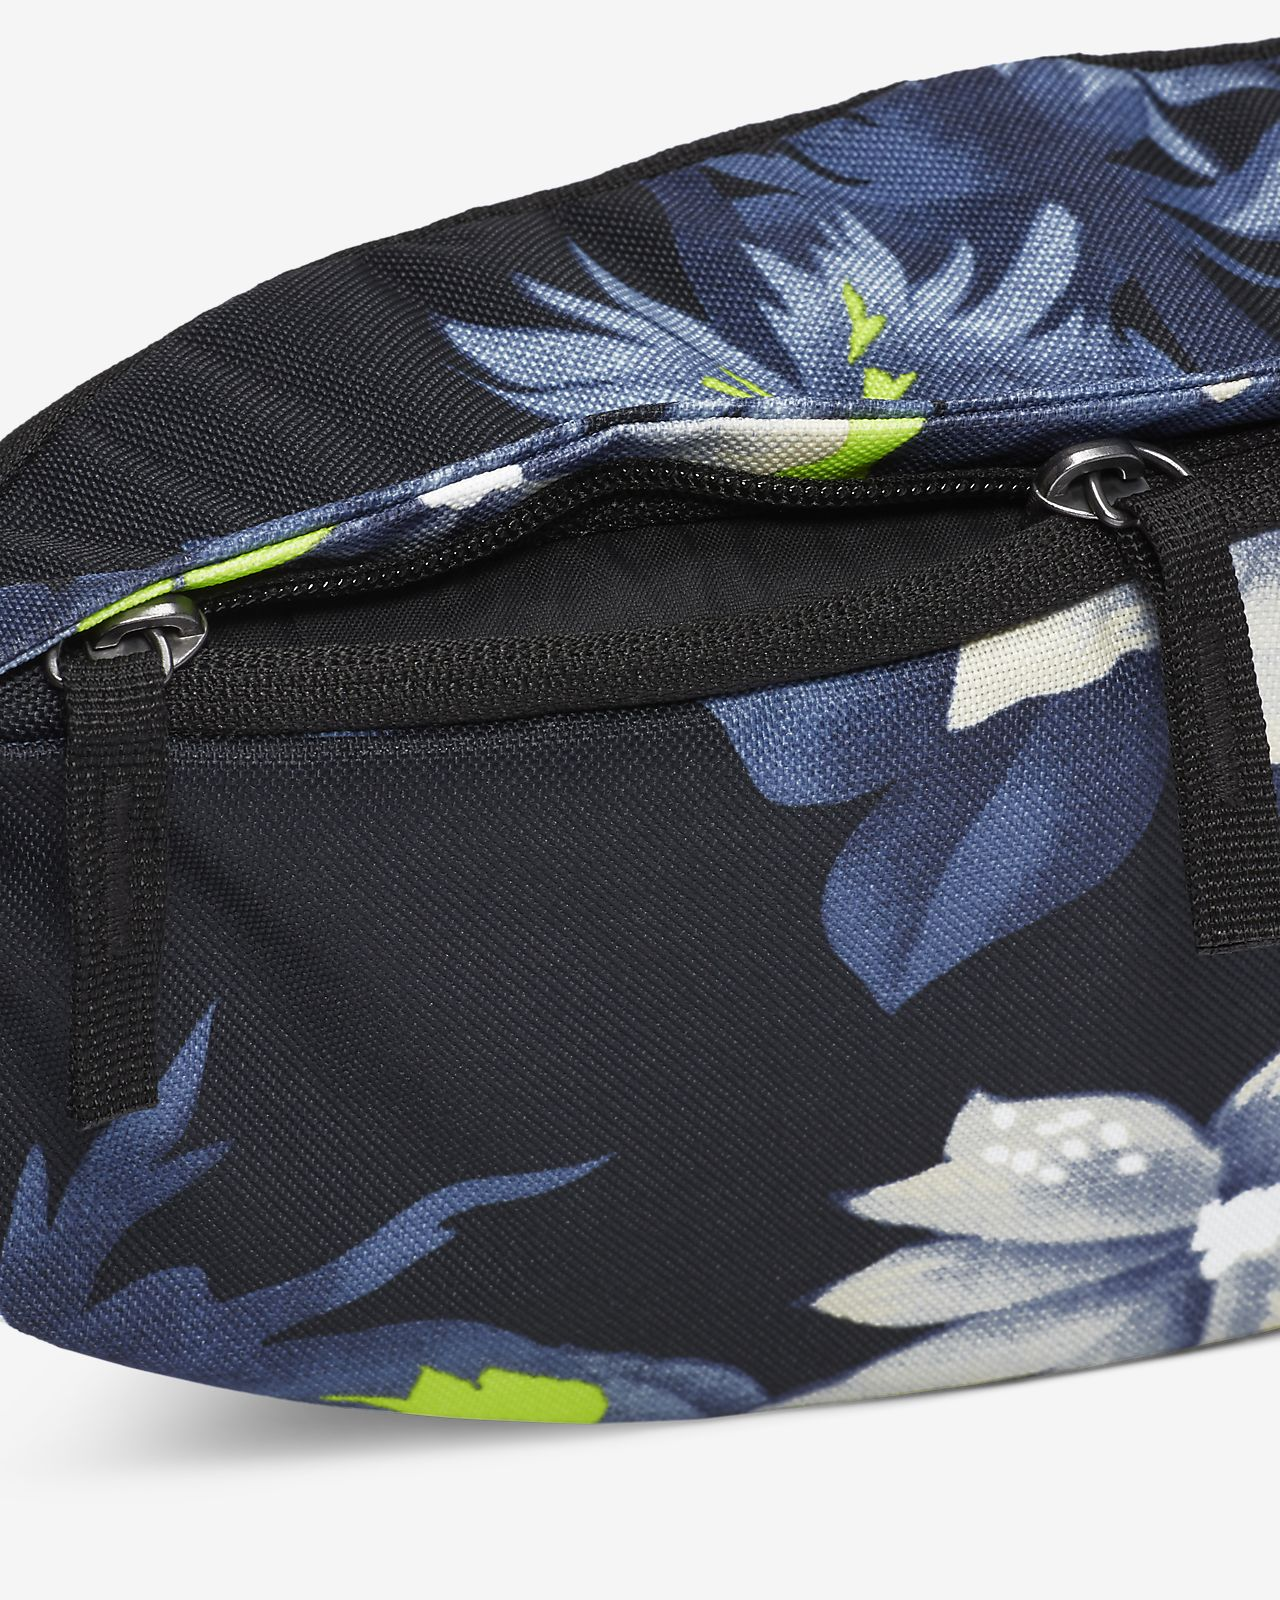 Nike SB Heritage Hip Pack Iguana | Sports equipment, Sport